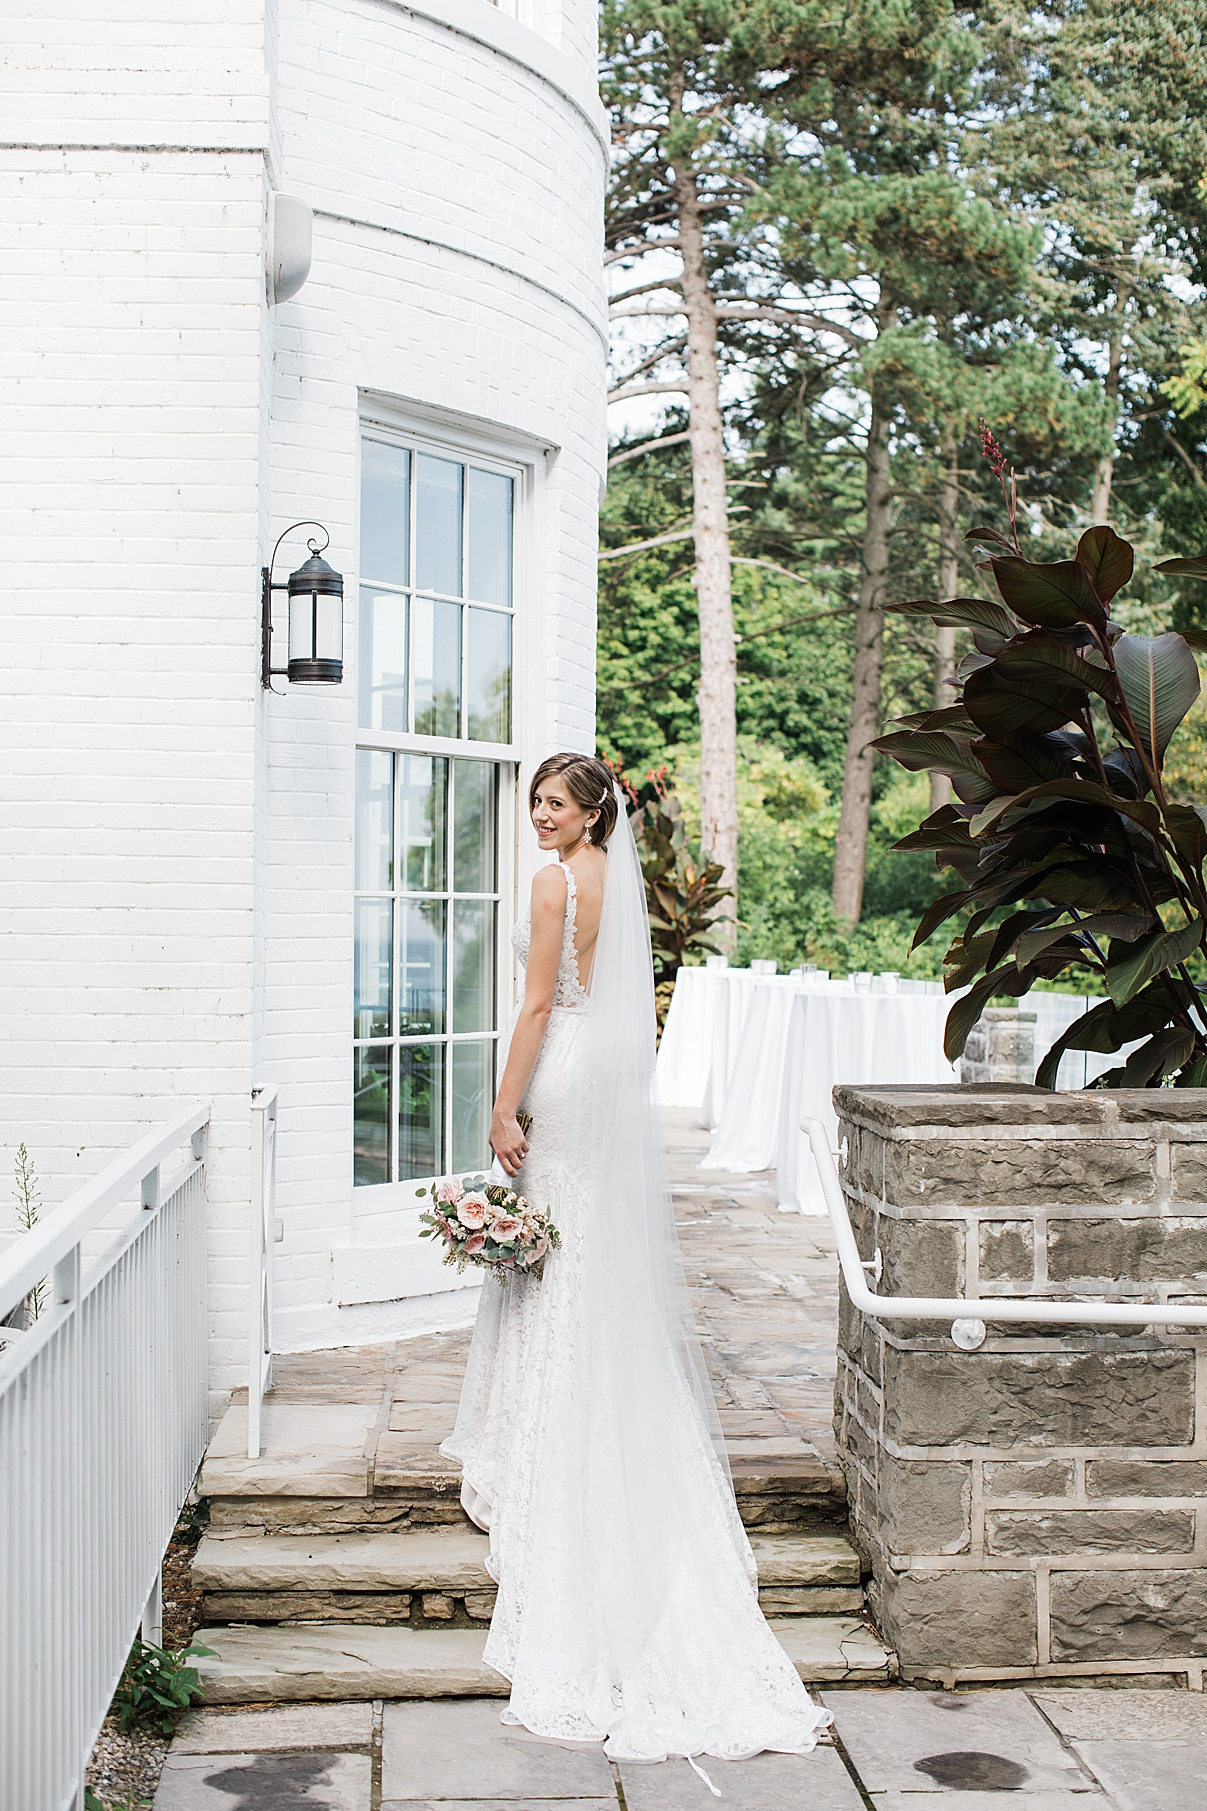 Bridal portrait -bride on steps| Harding Waterfront Estate Wedding| Ontario wedding photographer| Toronto wedding photographer| 3 Photography | 3photography.ca